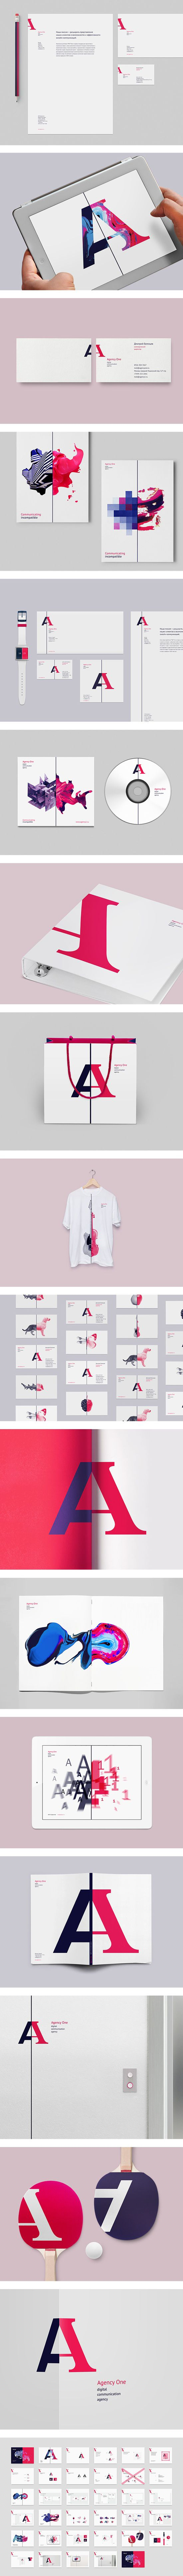 Agency One Identity by Vova Lifinov. 15 Striking Examples of Identity.